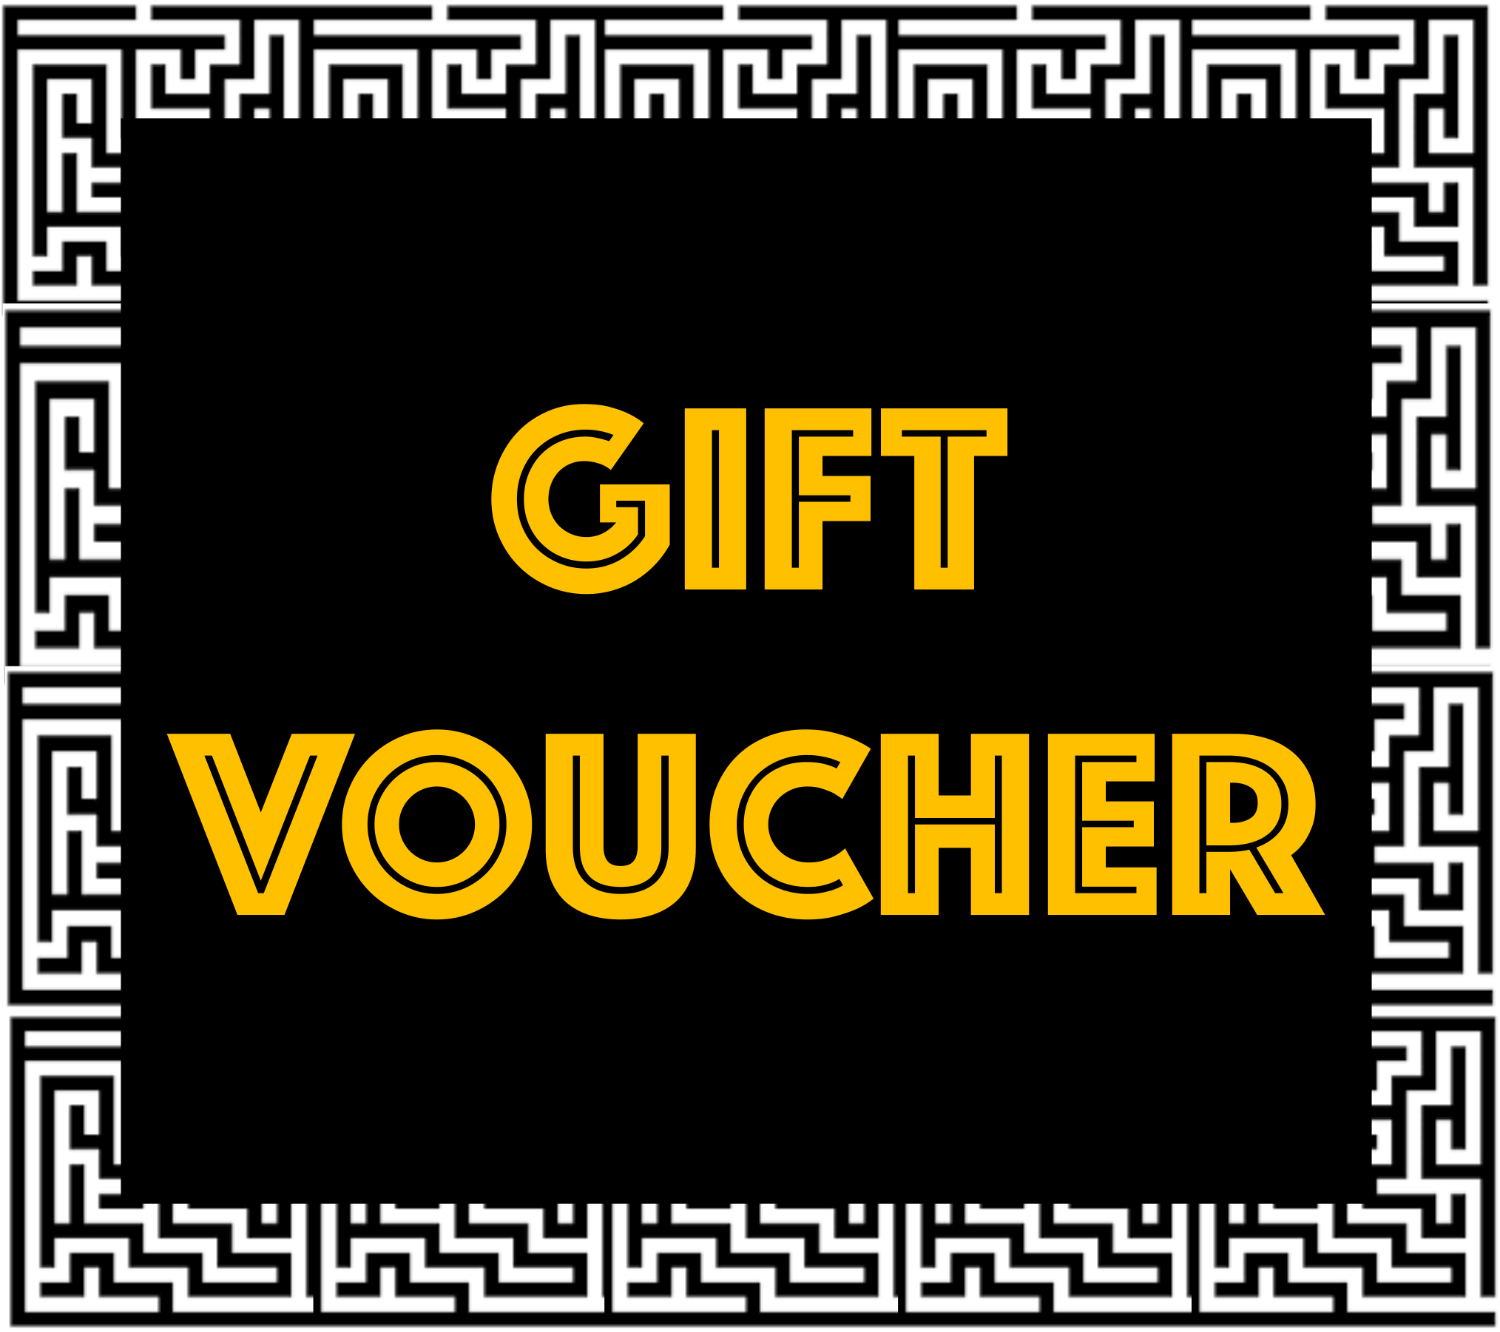 Gift voucher image for Escape From The Room